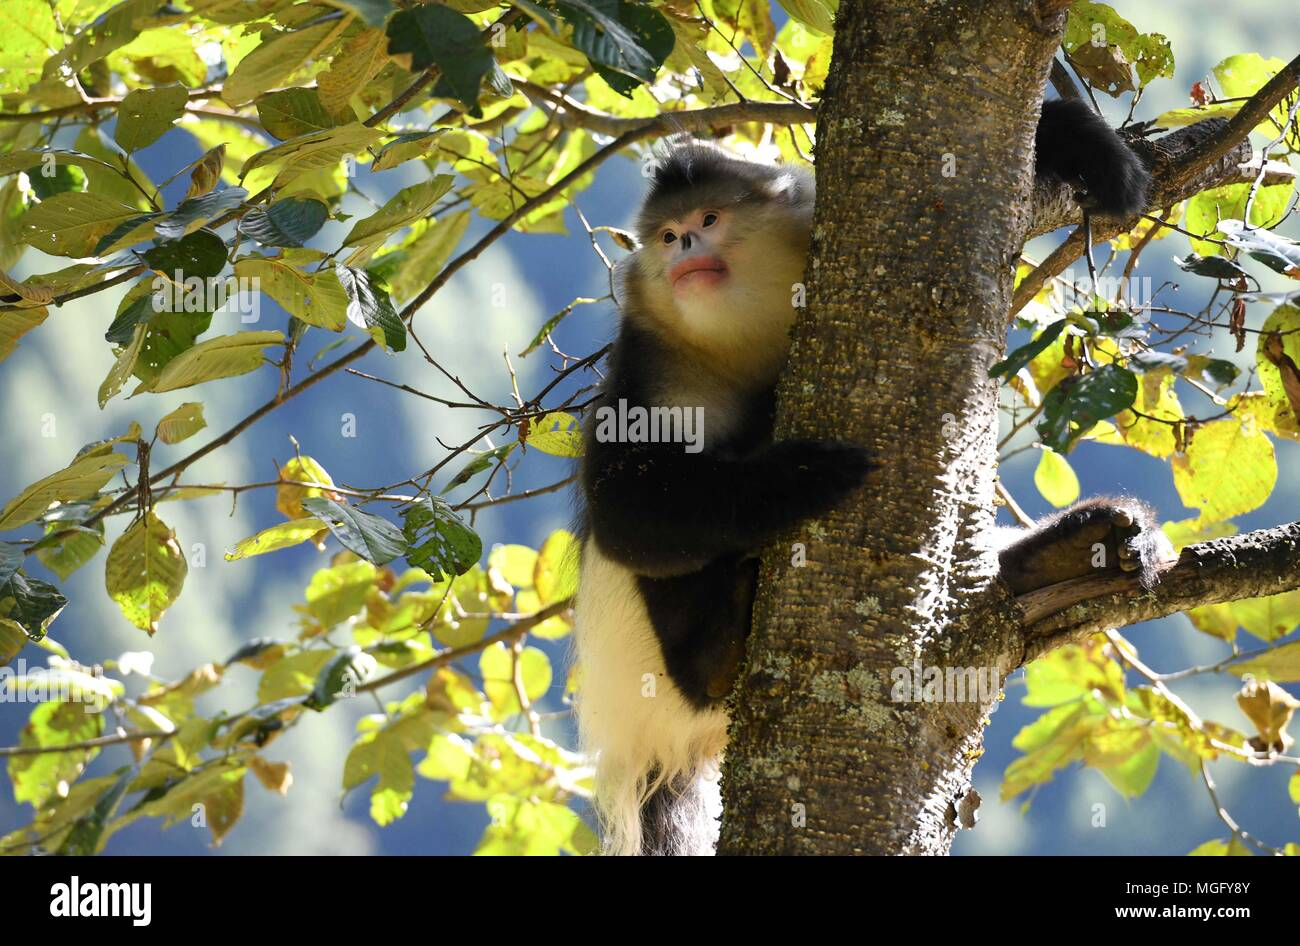 Kunming. 3rd Nov, 2017. File photo taken on Nov. 3, 2017 shows a black snub-nosed monkey, also known as the Yunnan golden monkey, climbing a tree in the Yunnan golden monkey national park in Tibetan Autonomous Prefecture of Deqen, southwest China's Yunnan Province. To keep Yangtze River clean and beautiful, efforts to restore ecological environment have been taken in the upper reaches of Yangtze River in Yunnan Province in recent years. Credit: Lin Yiguang/Xinhua/Alamy Live News - Stock Image